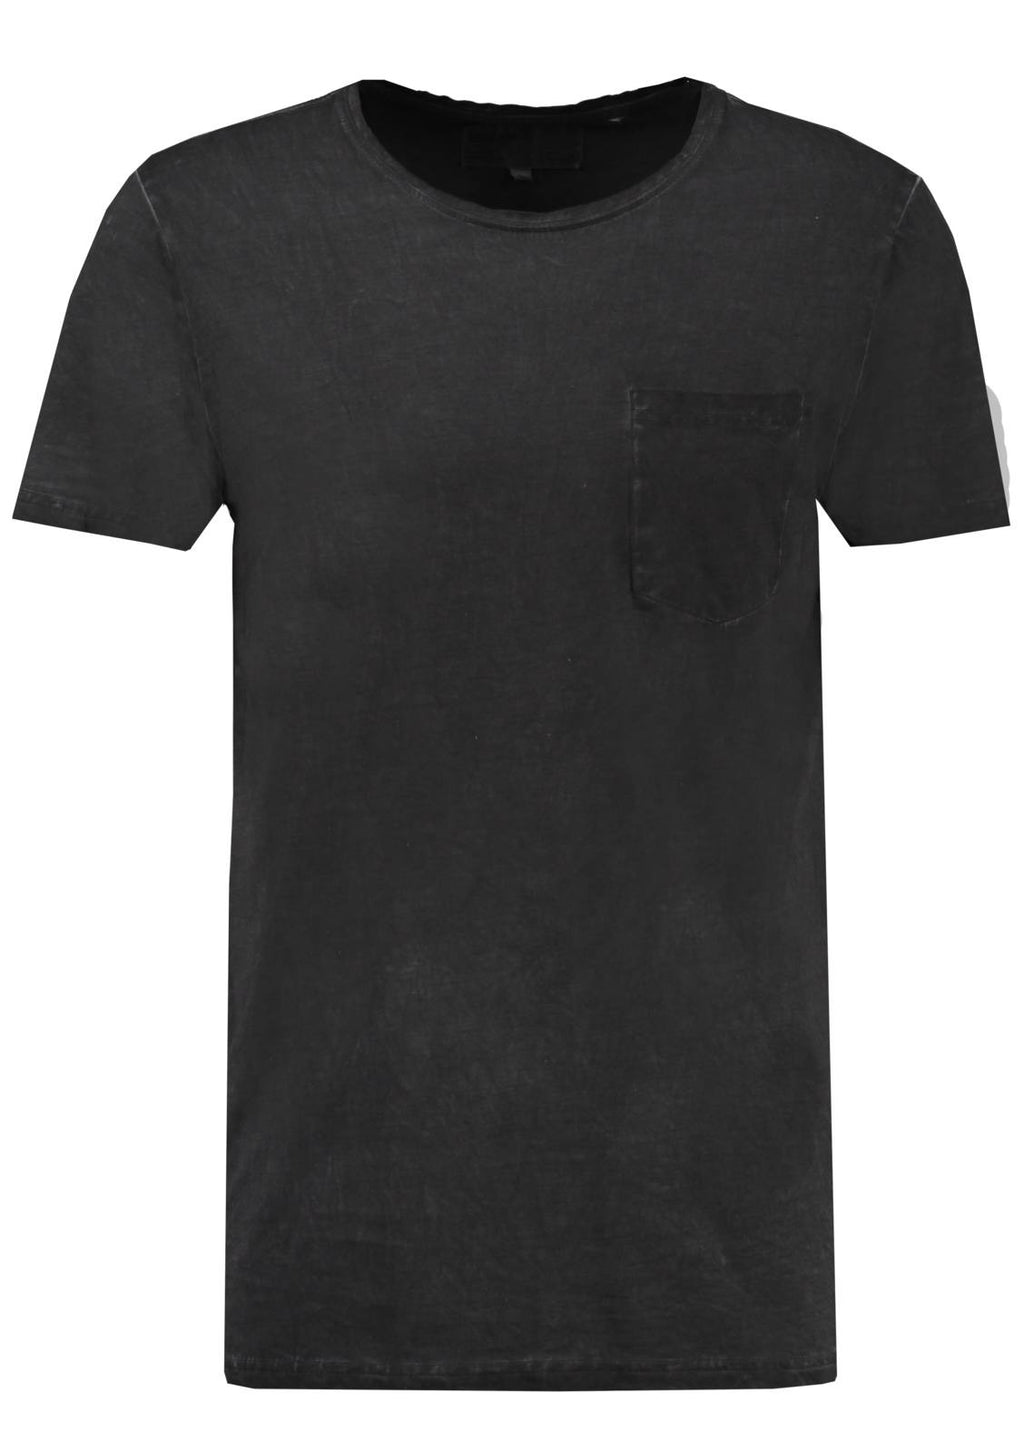 Garcia Black Rico T-Shirt - REDUCED!!